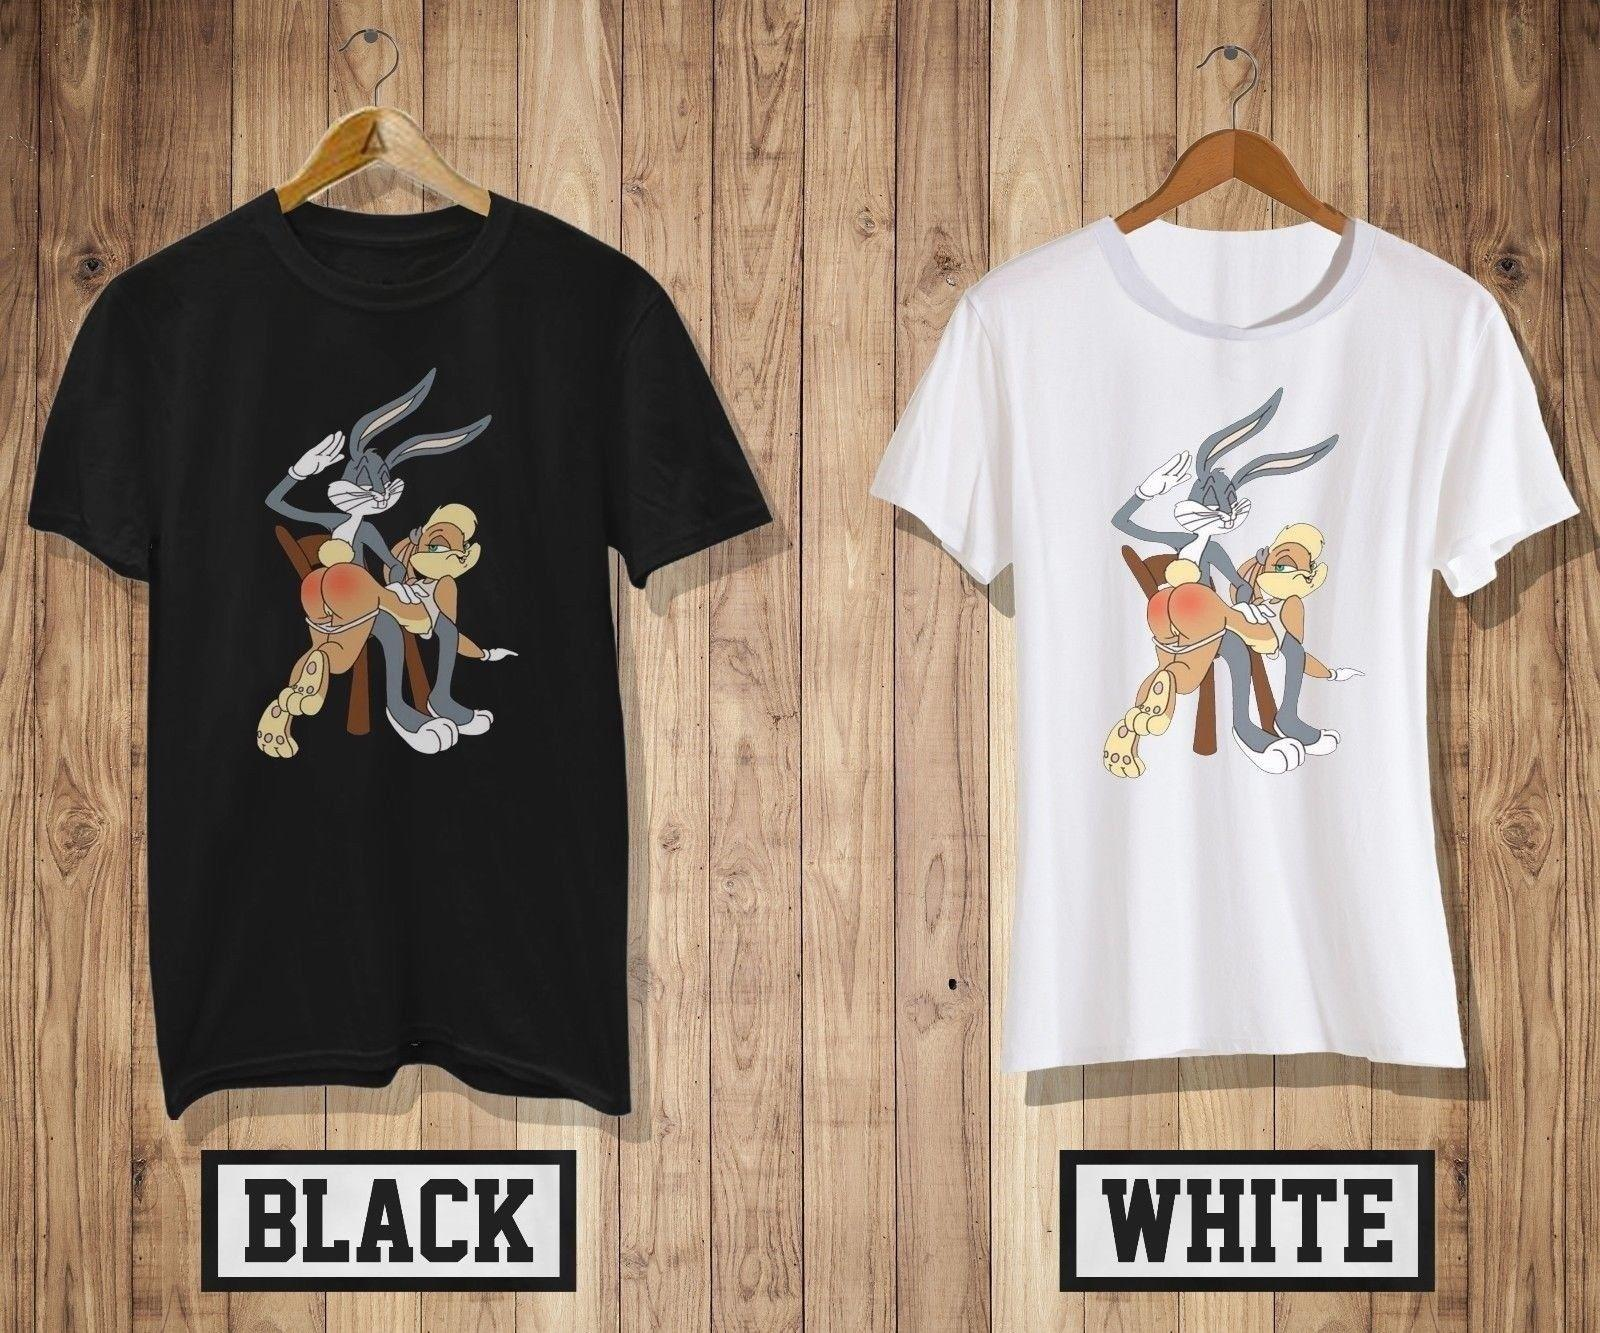 536ac7320 New Bugs Bunny And Lola T Shirt Mens Womens Black White Looney Tunes Shirt  2 Cool Casual Pride T Shirt Men Skull T Shirts Tea Shirt From Cls6688521